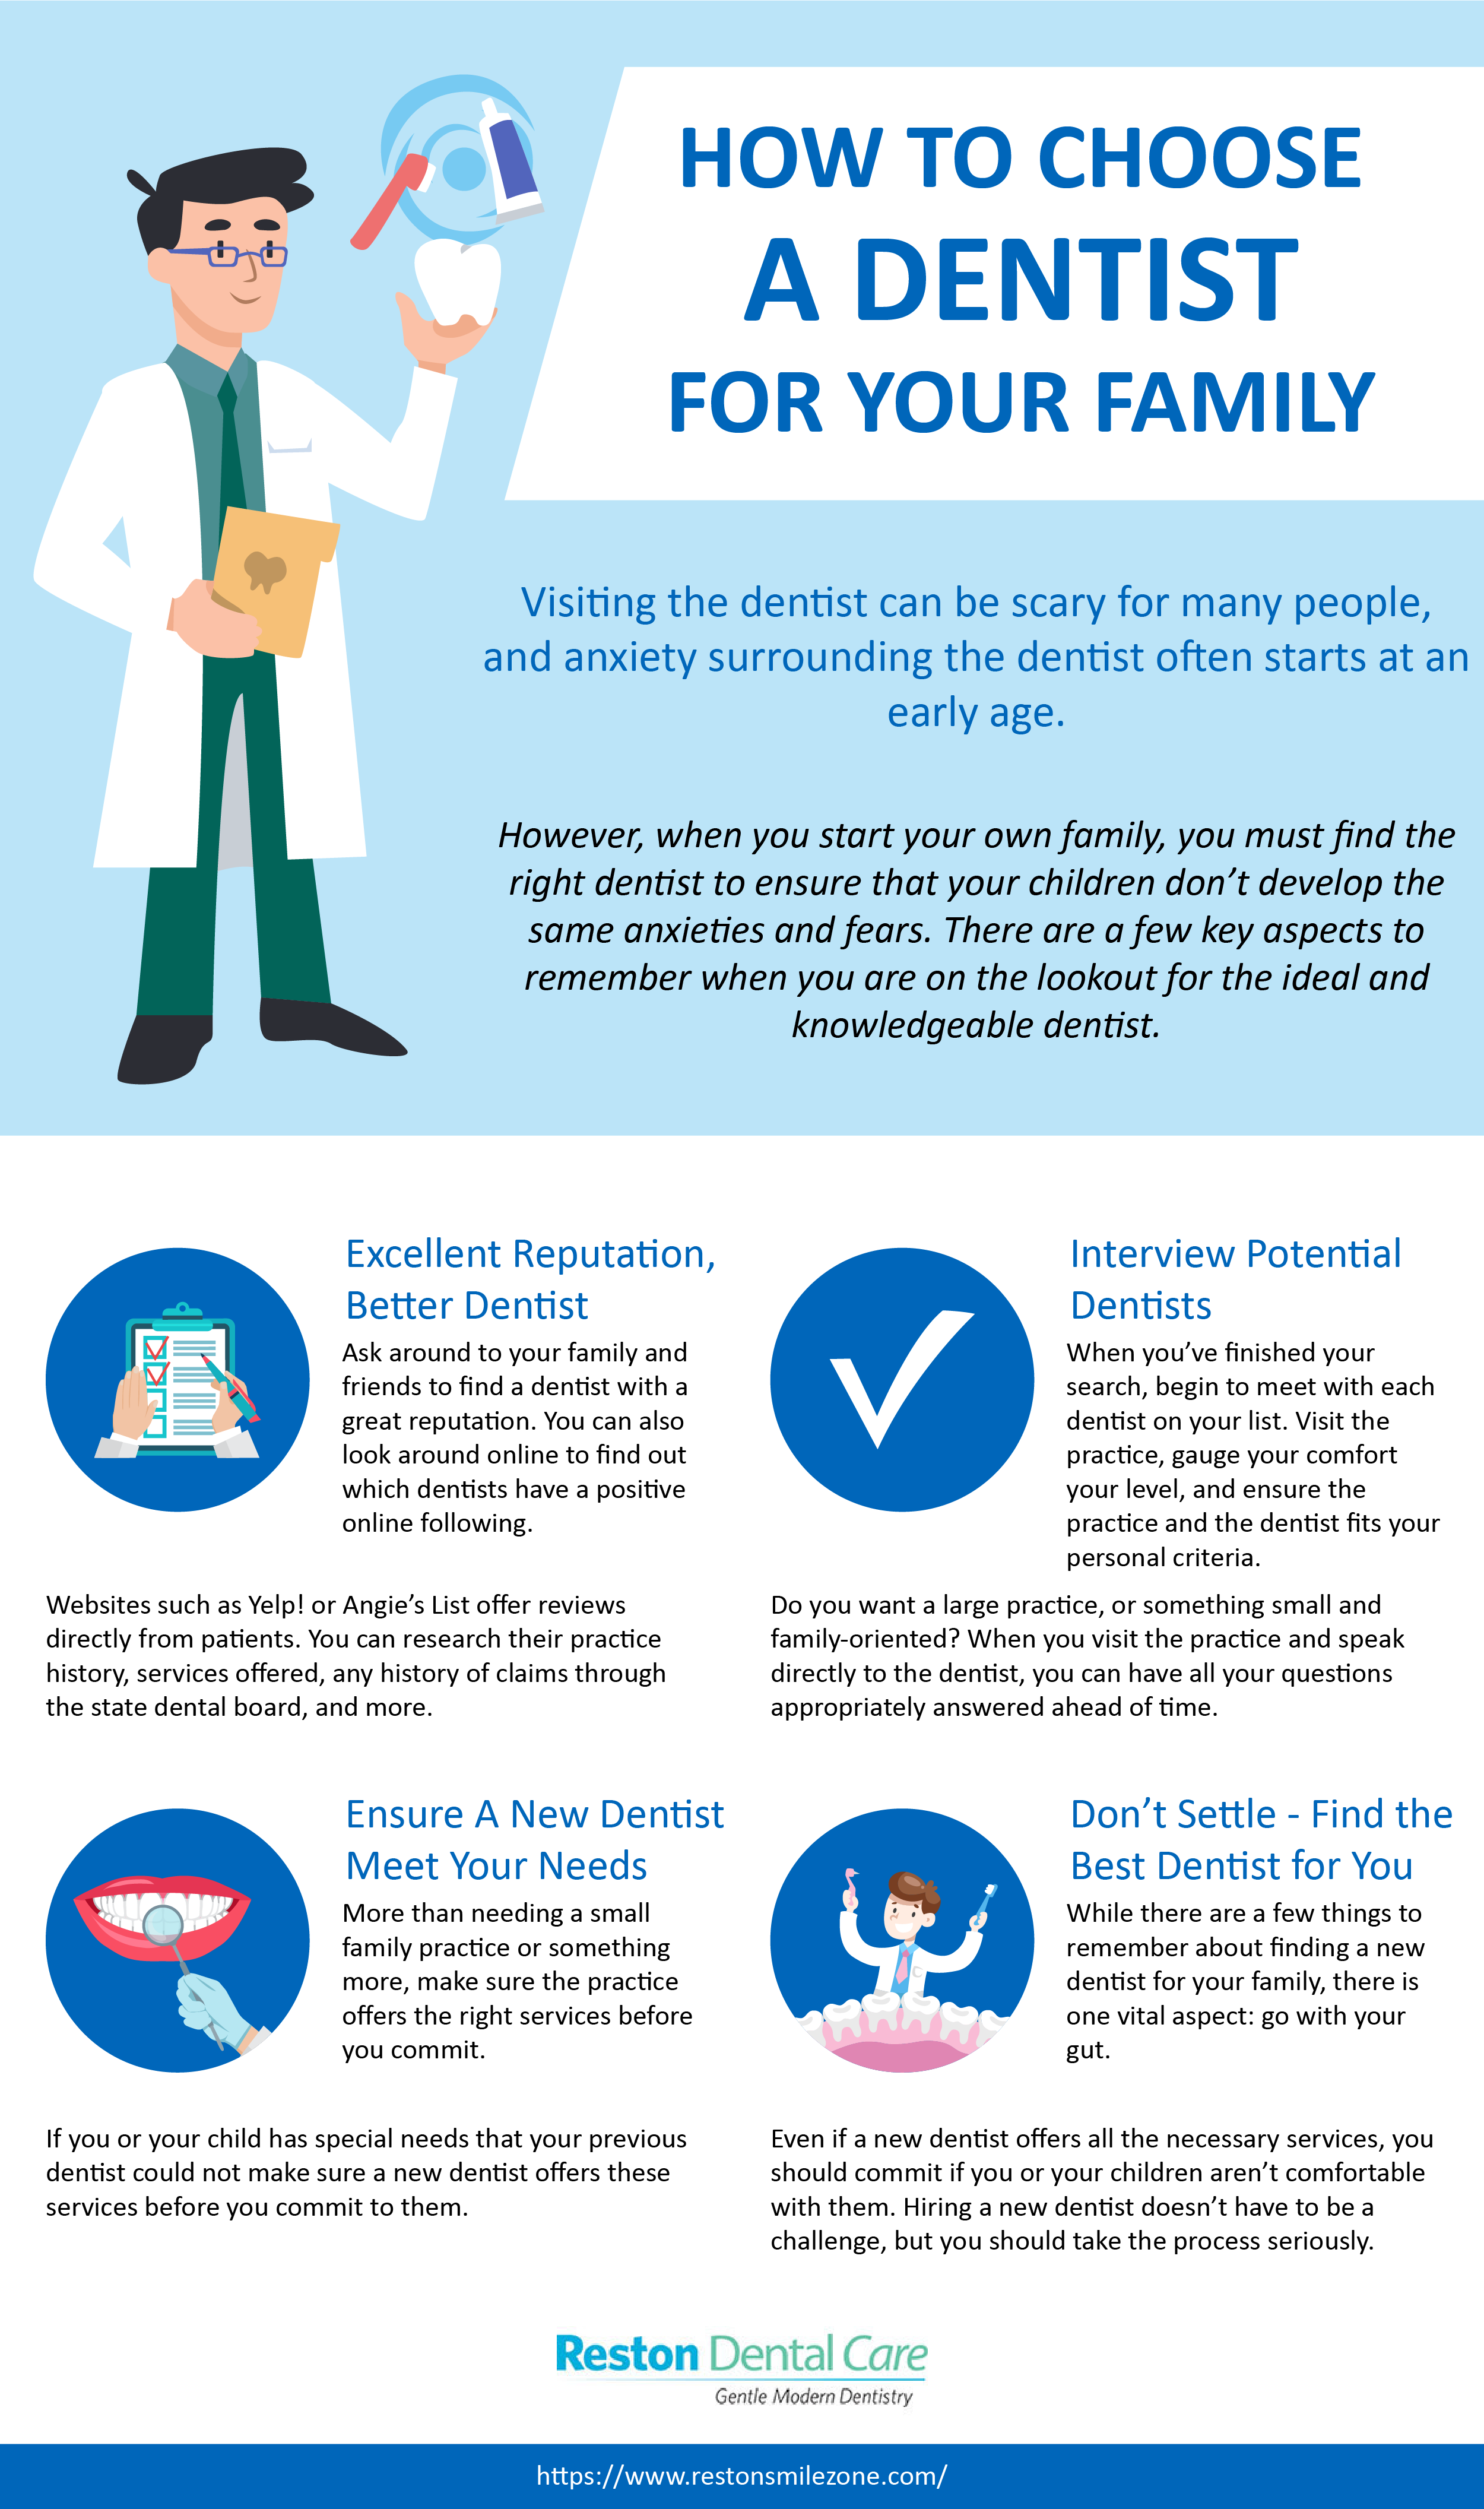 How to Choose a Dentist for Your Family